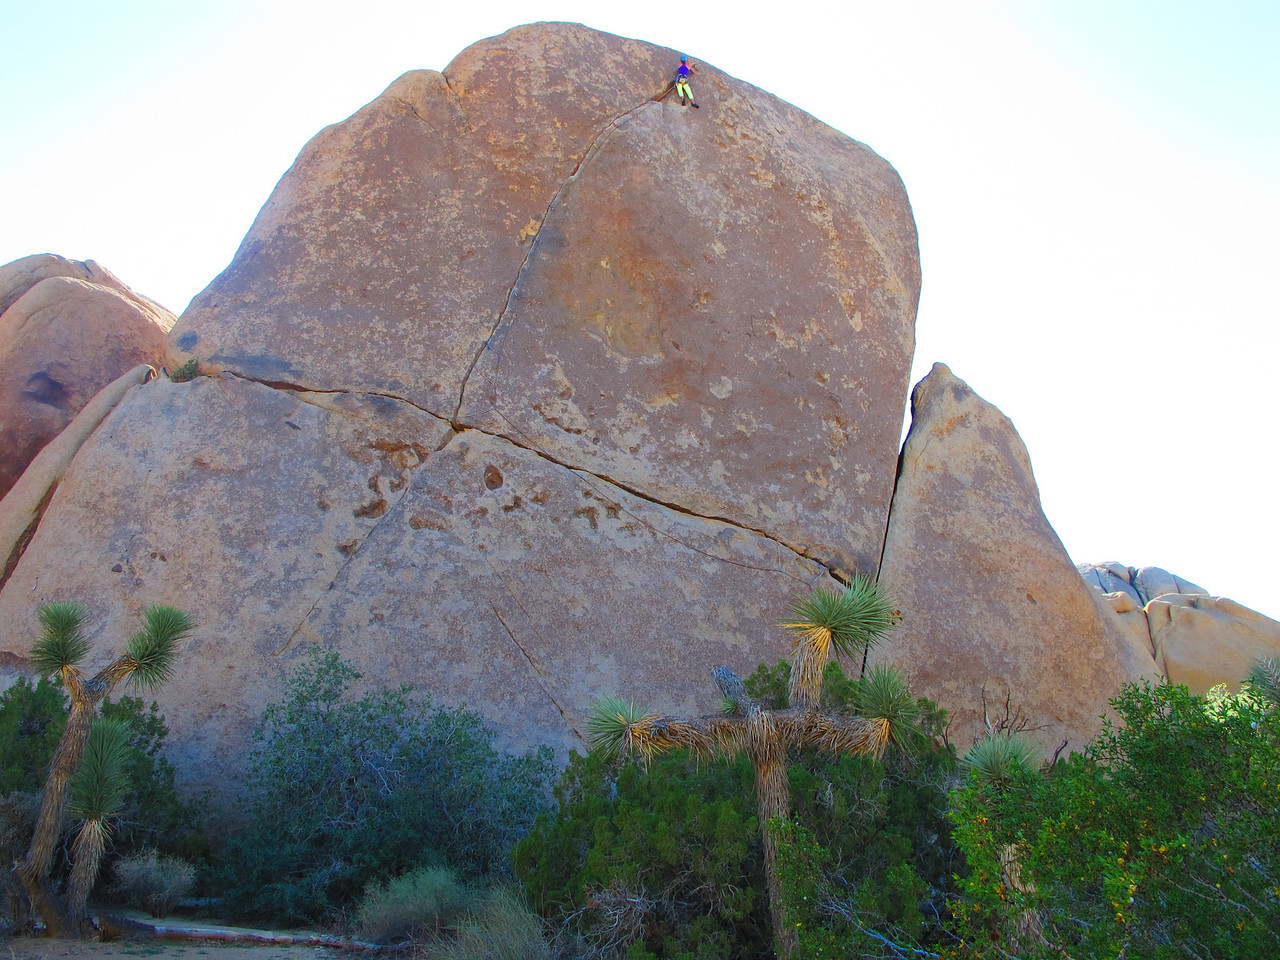 27/10/13 Rubicon Crack !!! Starts on the far right, goes up then all the way aross left a looooong way before going back up again. Classy climbing all the way with steep finger locks up high.